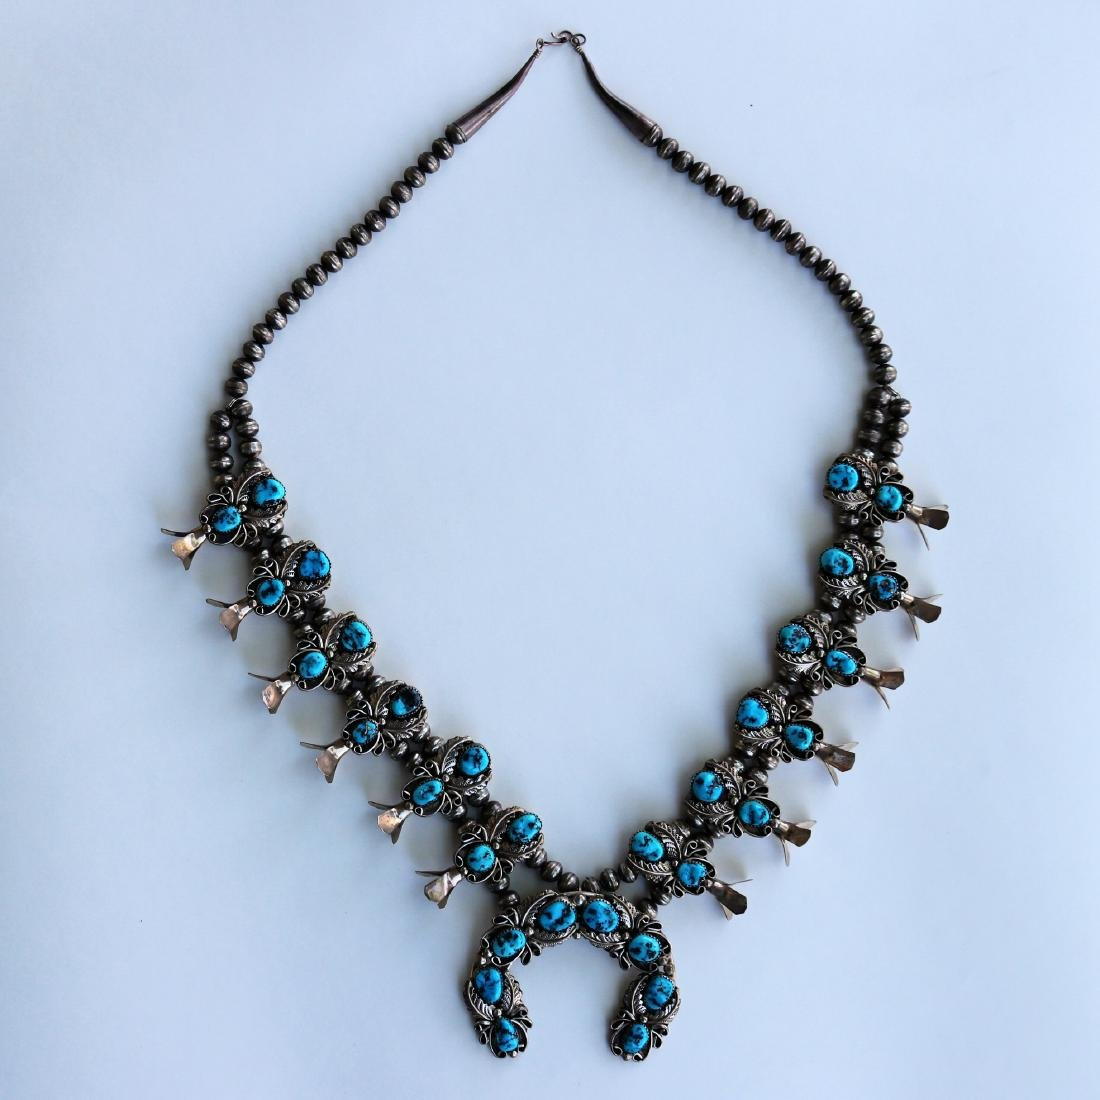 H.B.Y.Squash Blossom Necklace Sleeping Beauty Turquoise